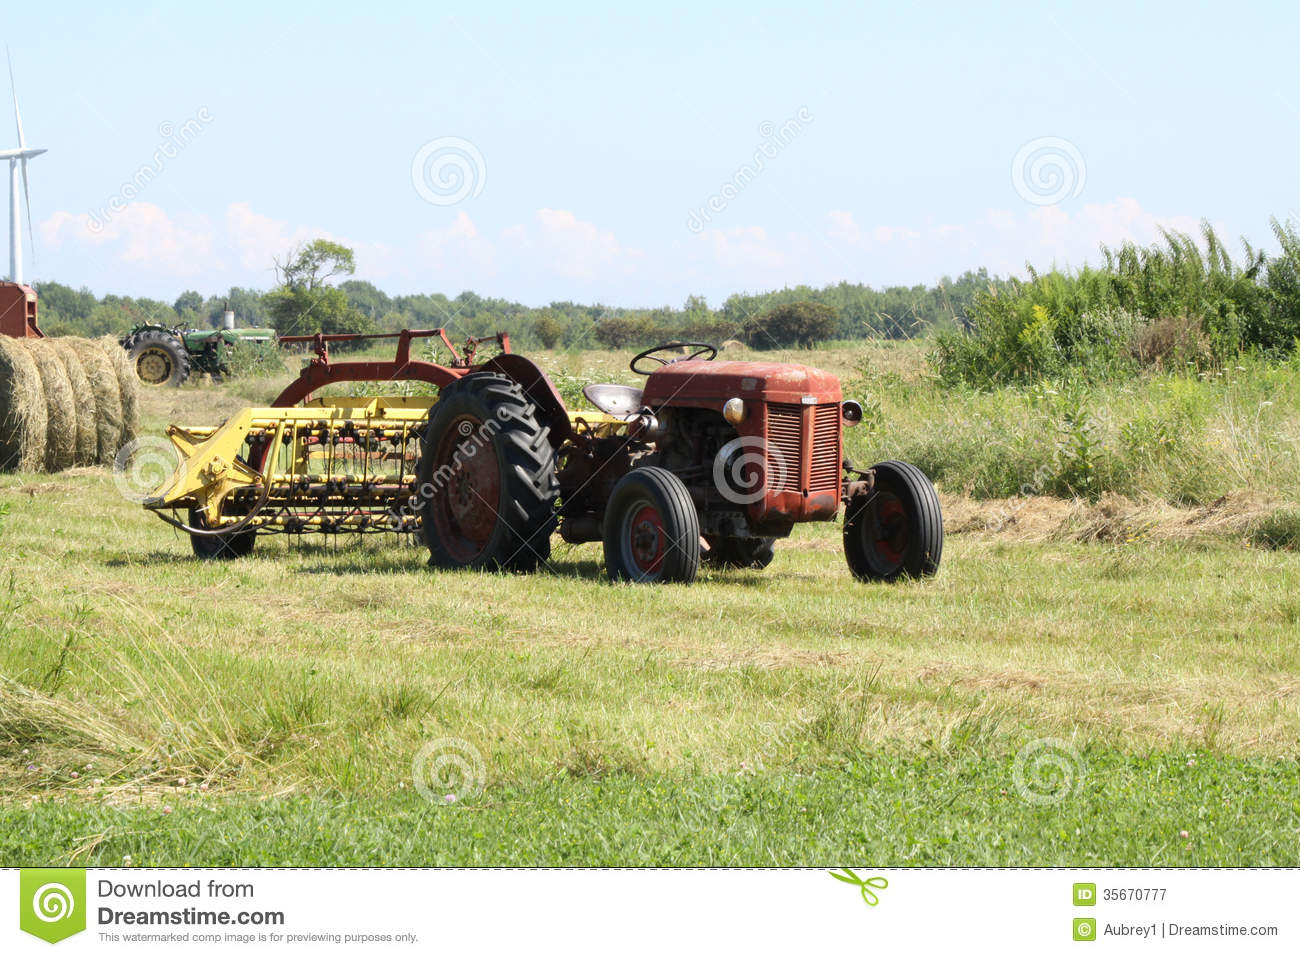 About Tractor Supply Company. Tractor Supply Company began as a mail-order catalog business and has grown into a nationwide retailer of supplies and equipment for the rural lifestyle.